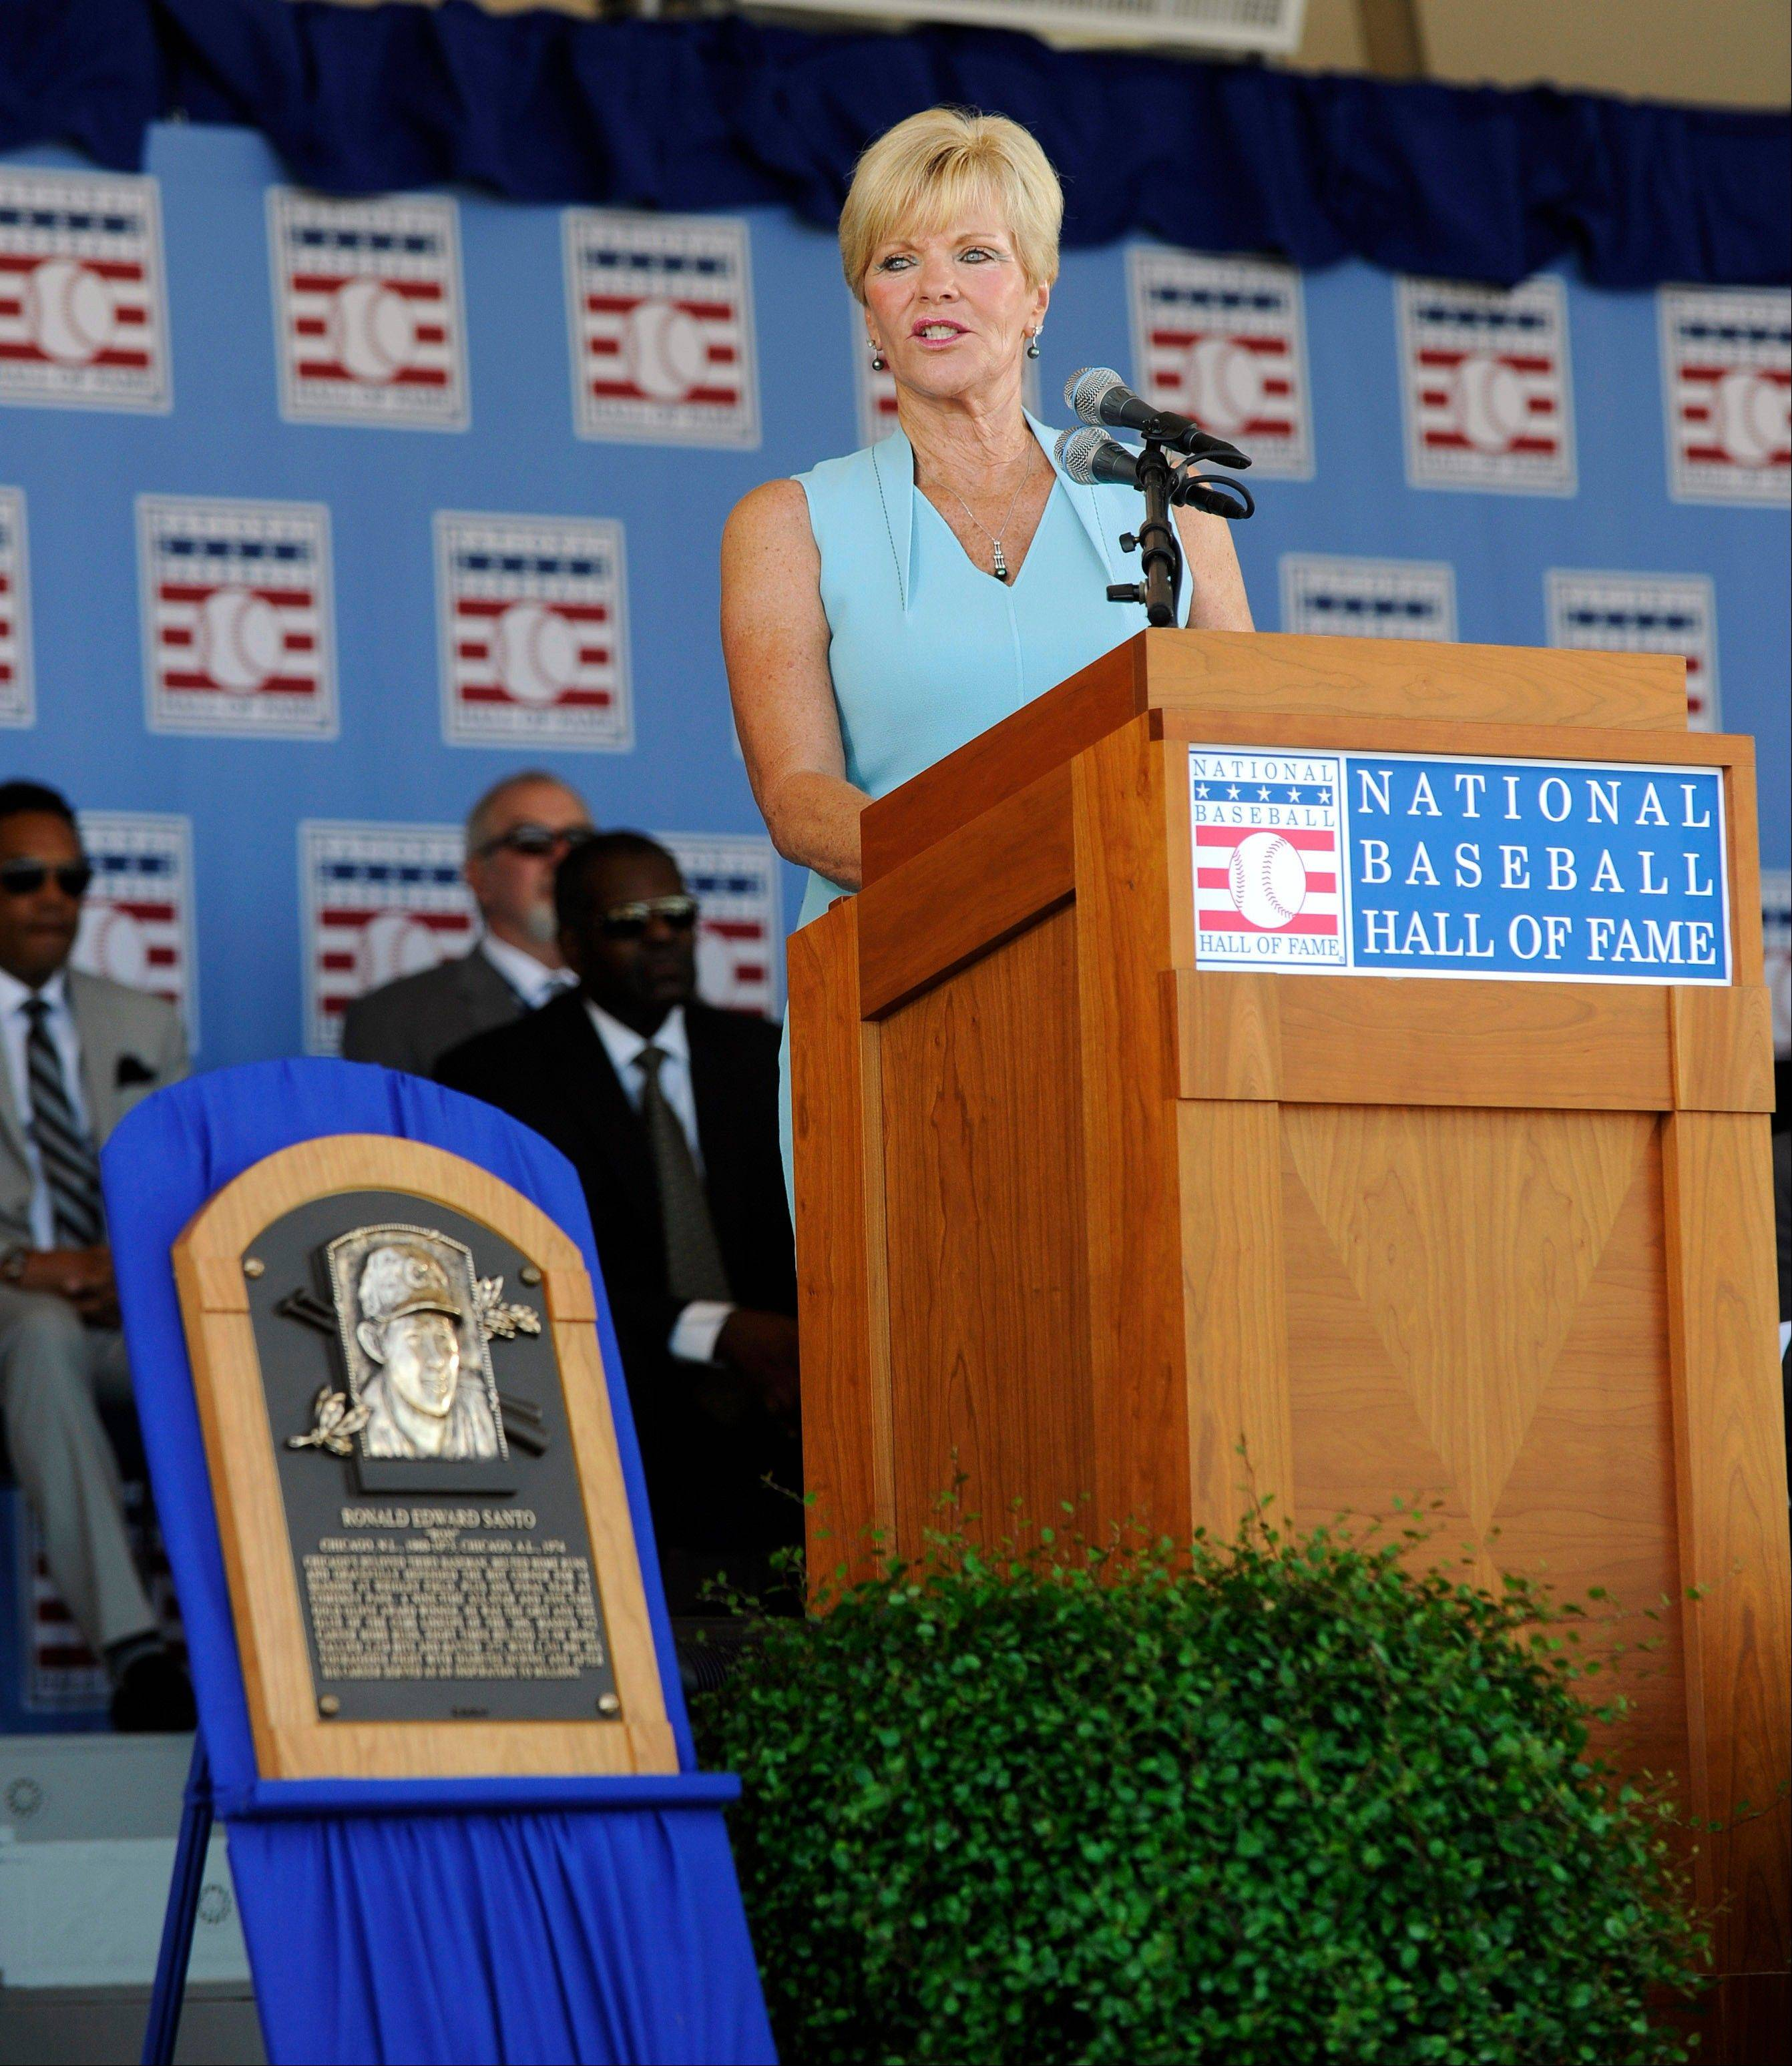 Vicki Santo, widow of star Cubs third baseman and team broadcaster Ron Santo, delivers a speech Sunday during his National Baseball Hall of Fame and Museum induction ceremony in Cooperstown, N.Y.